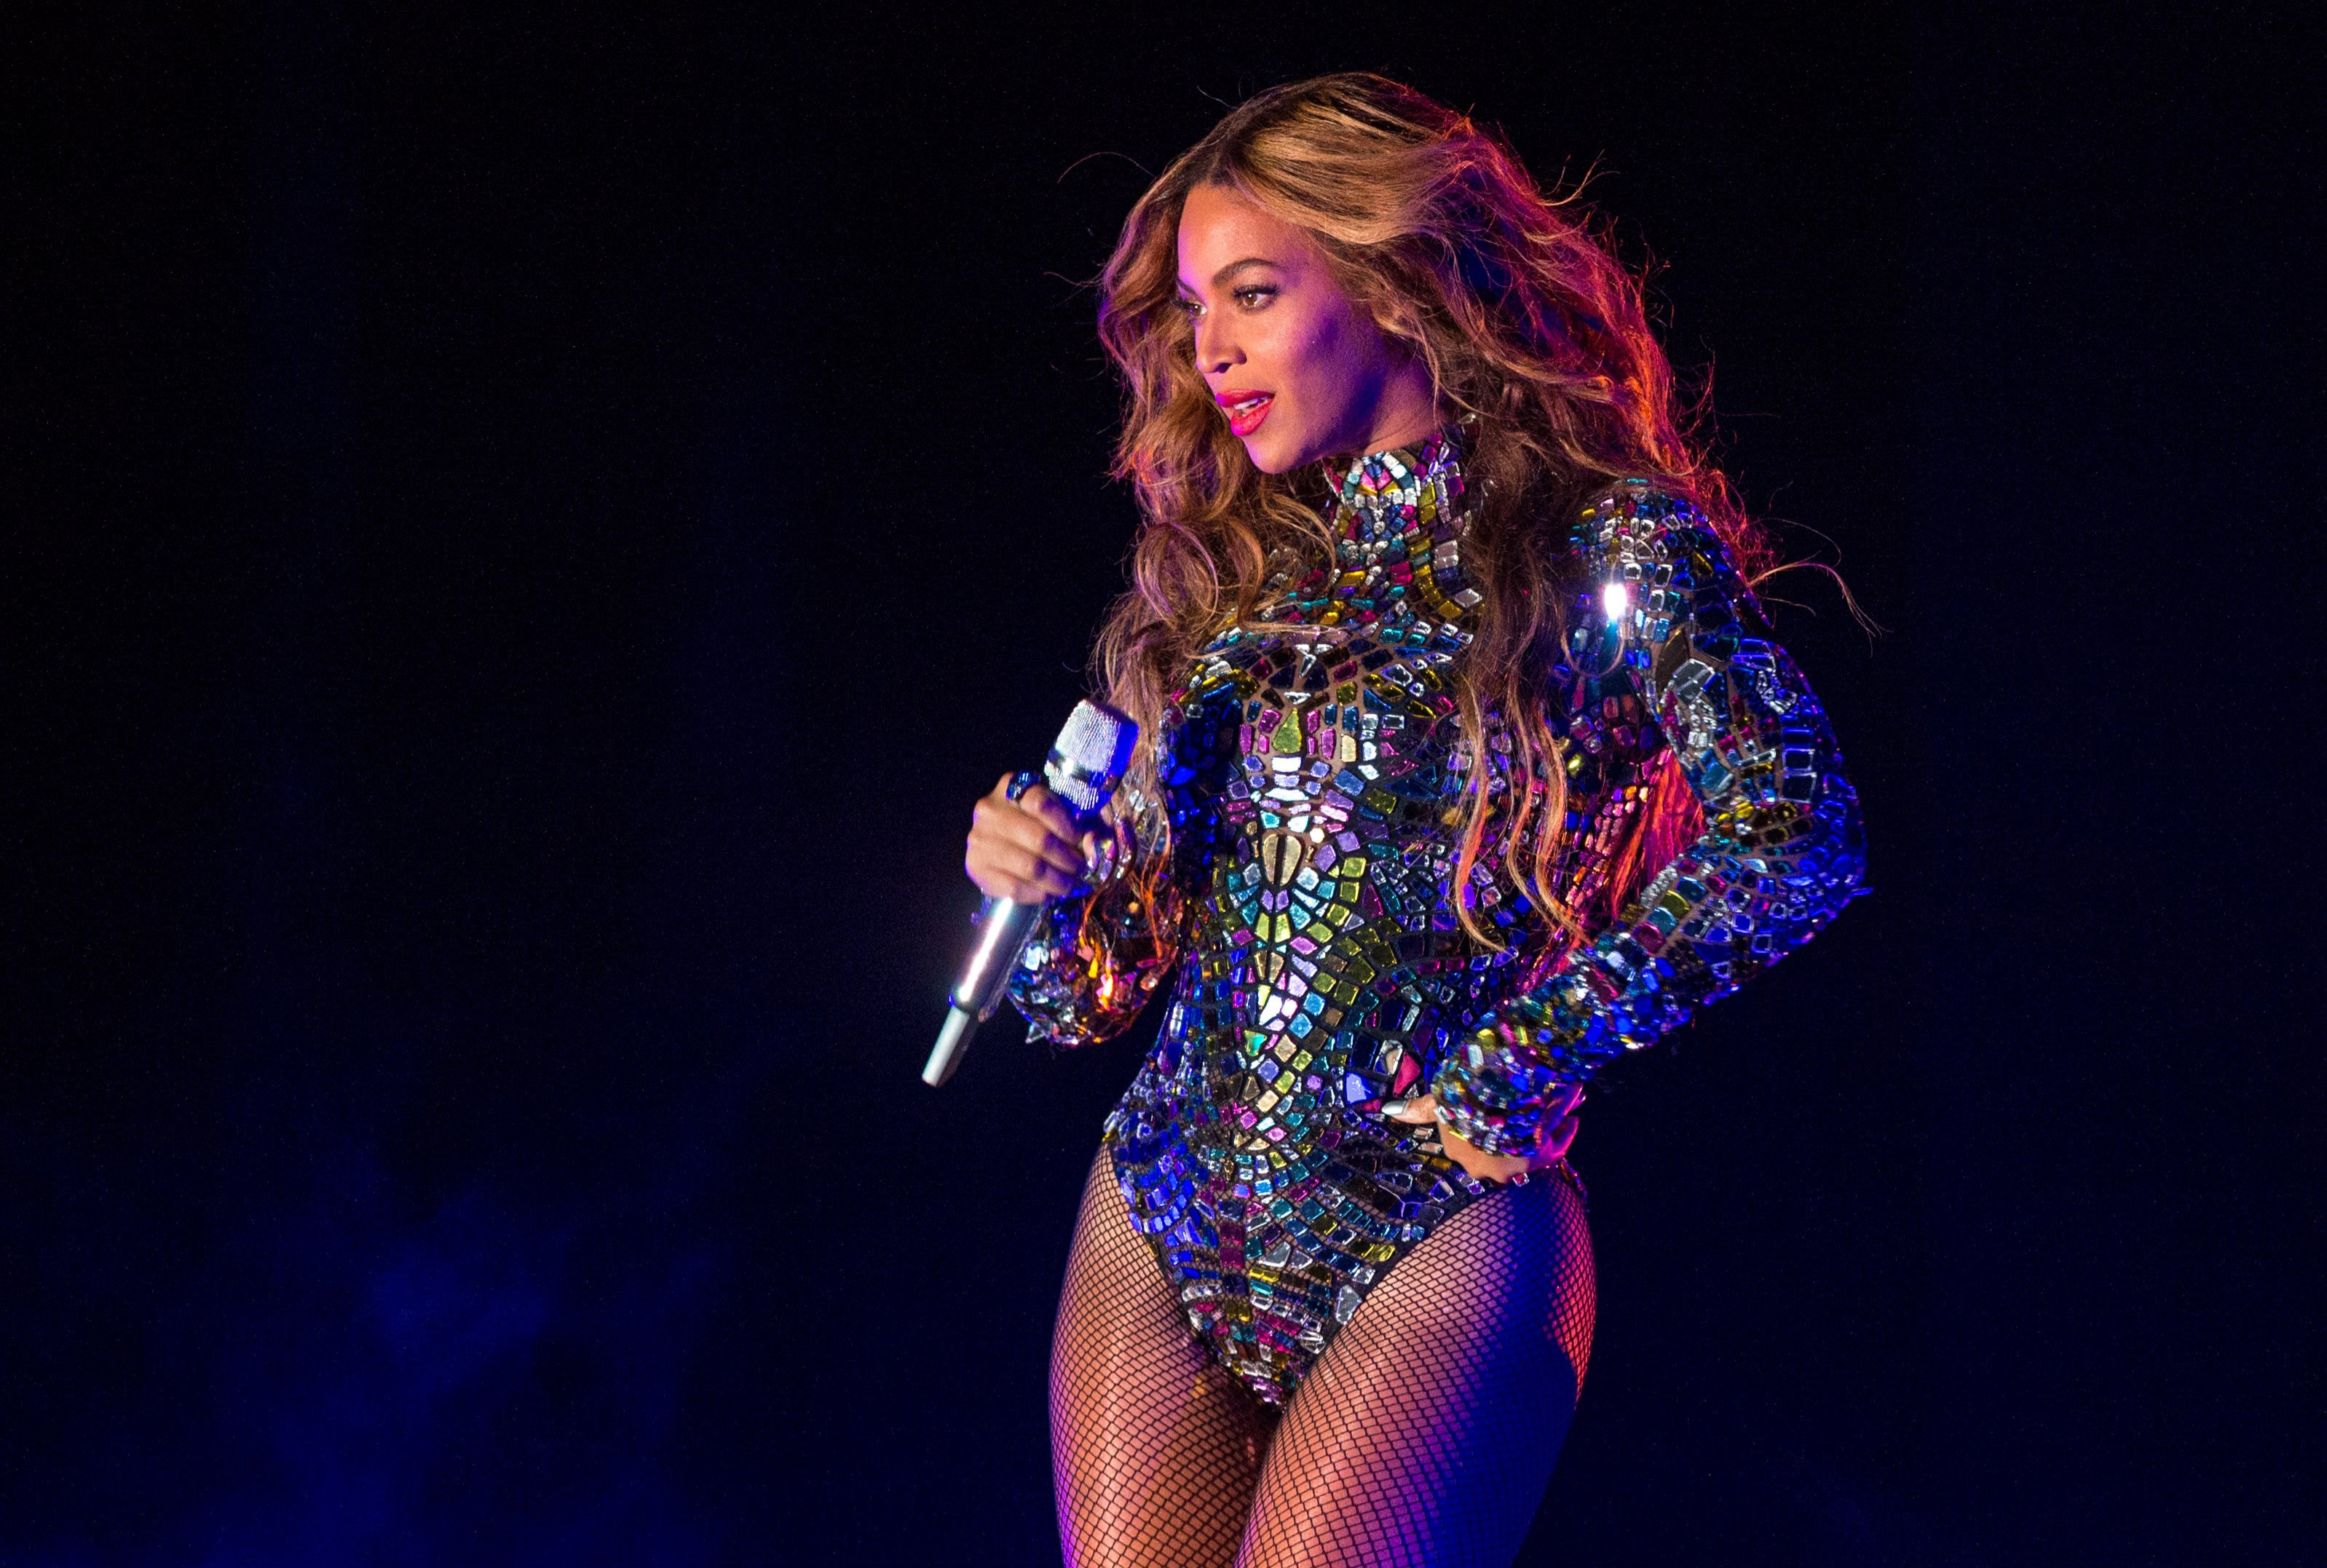 Beyonce performs onstage during the 2014 MTV Video Music Awards at The Forum on Aug. 24, 2014 in Inglewood, Calif.